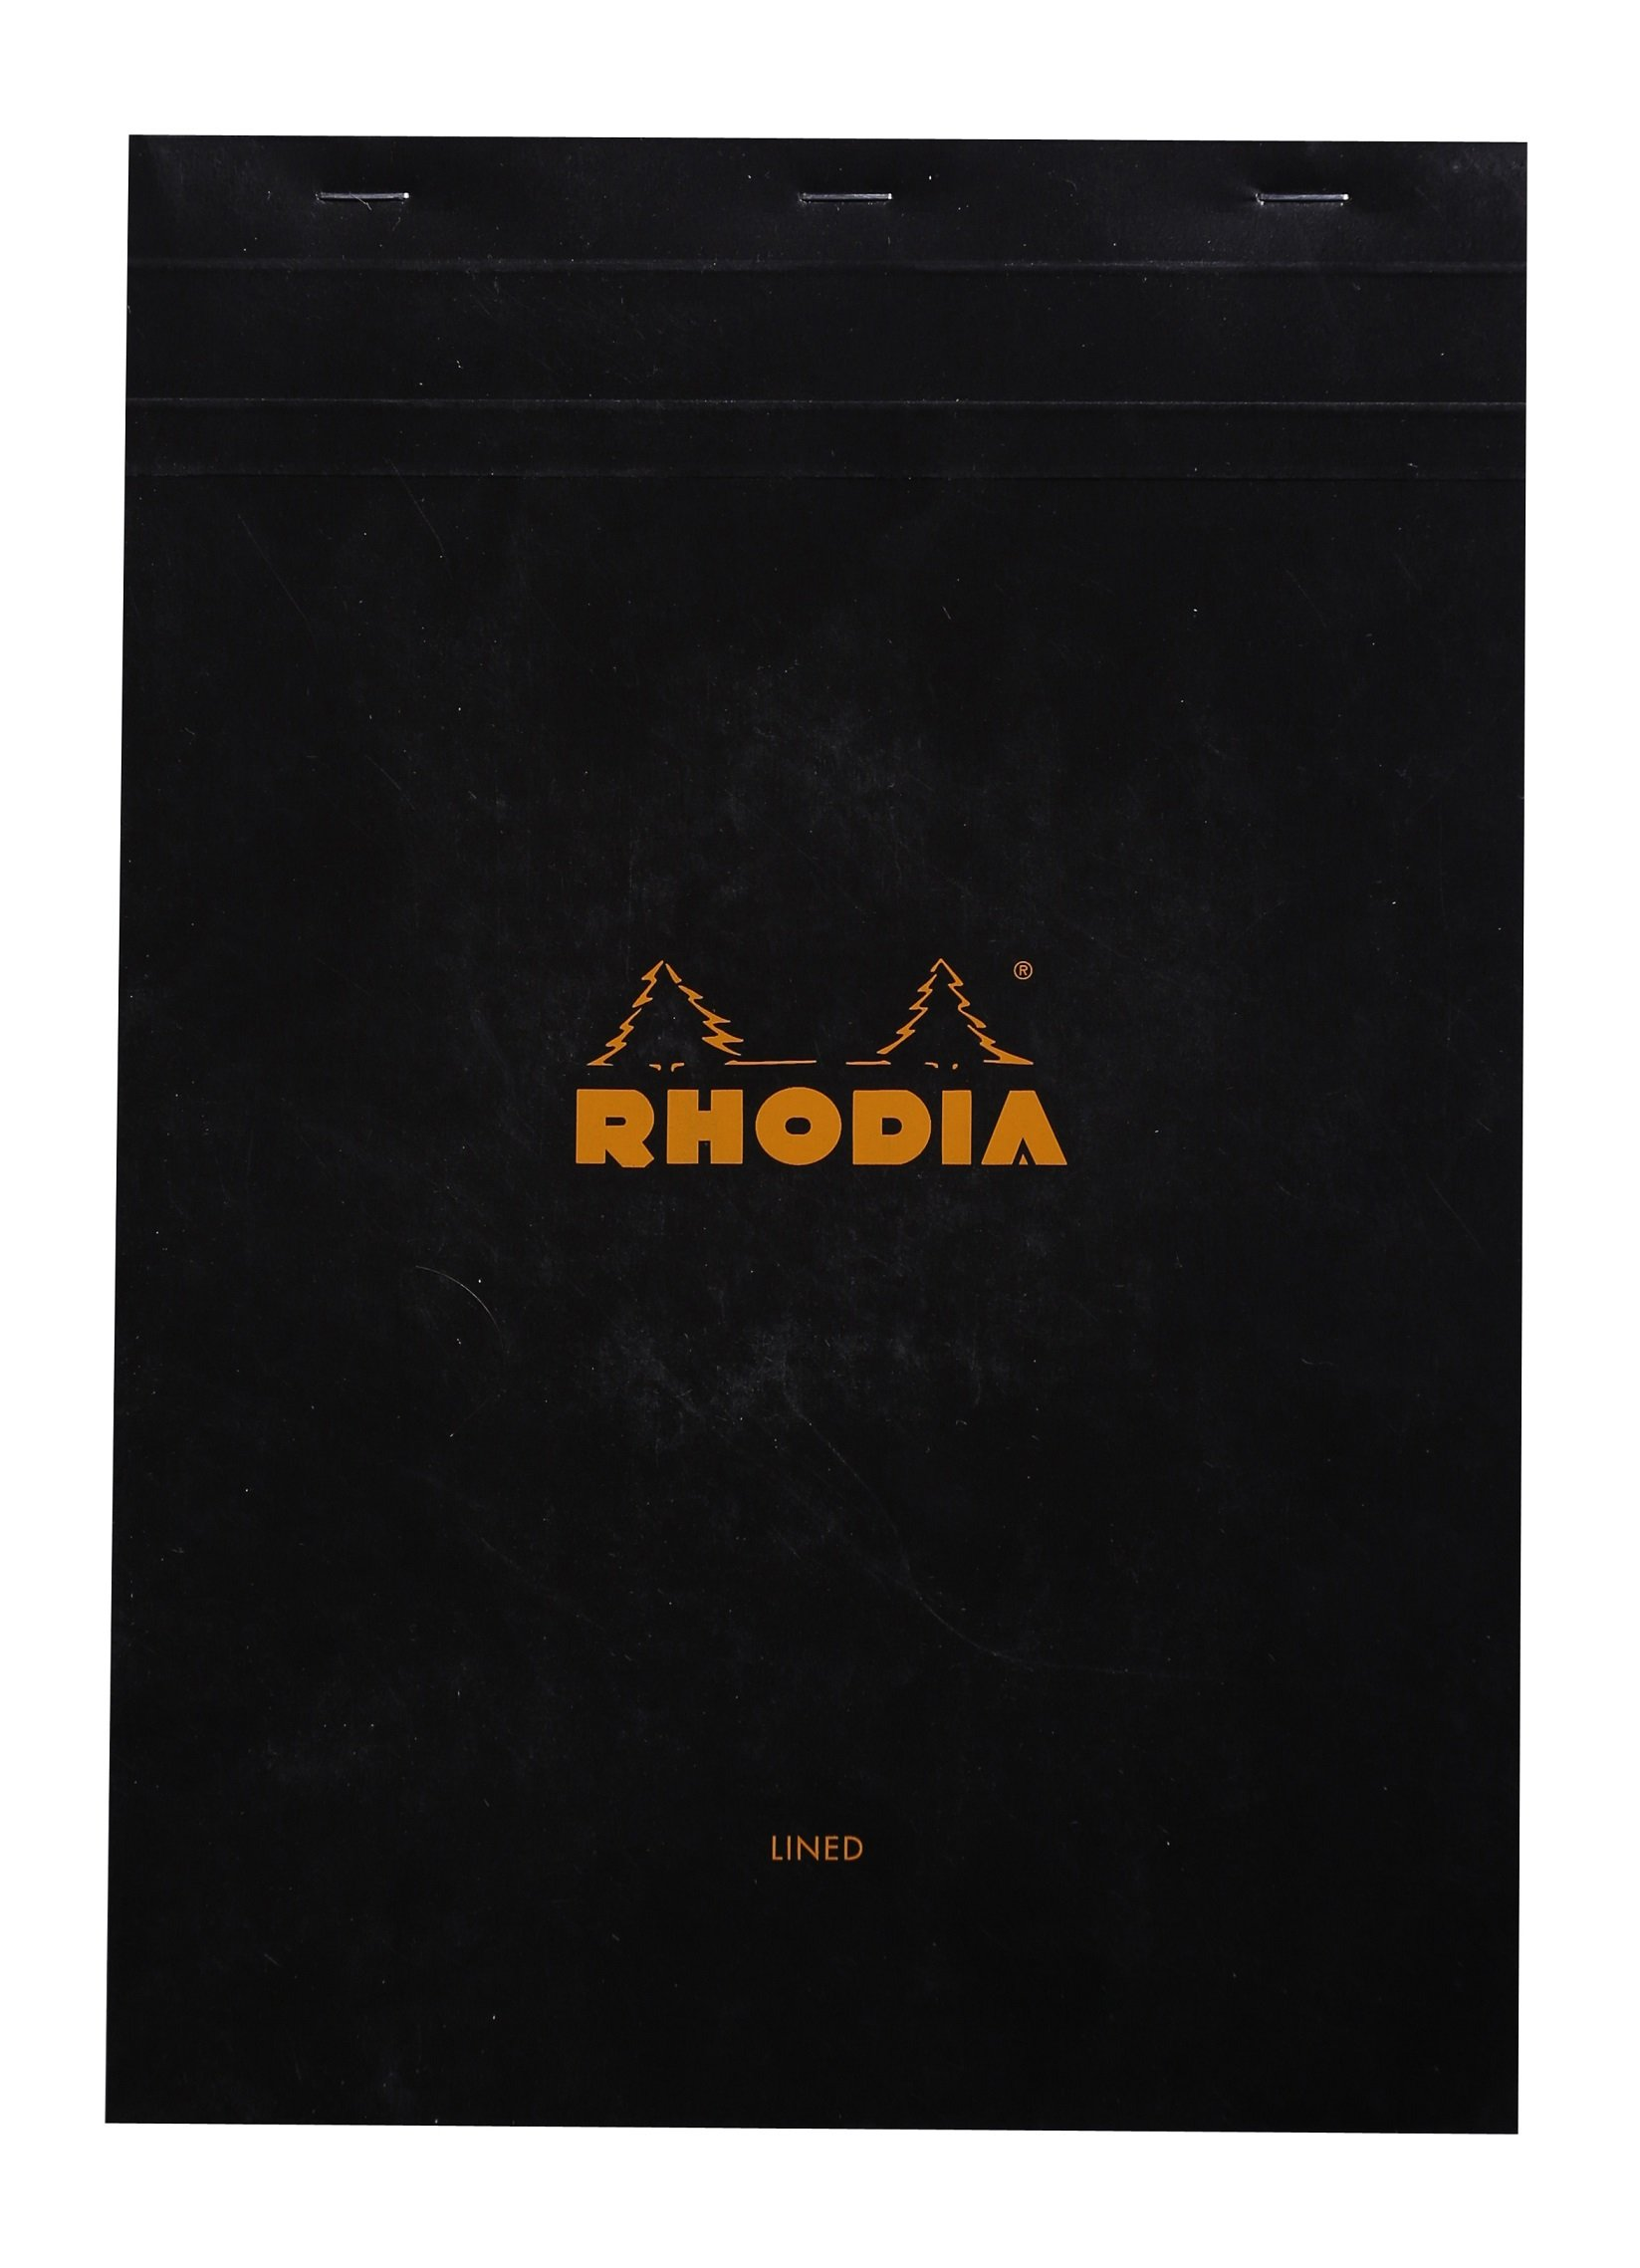 Rhodia Staplebound Notepads - Lined w/3 hole 80 sheets - 8 1/4 x 11 3/4 in. - Black cover by Rhodia